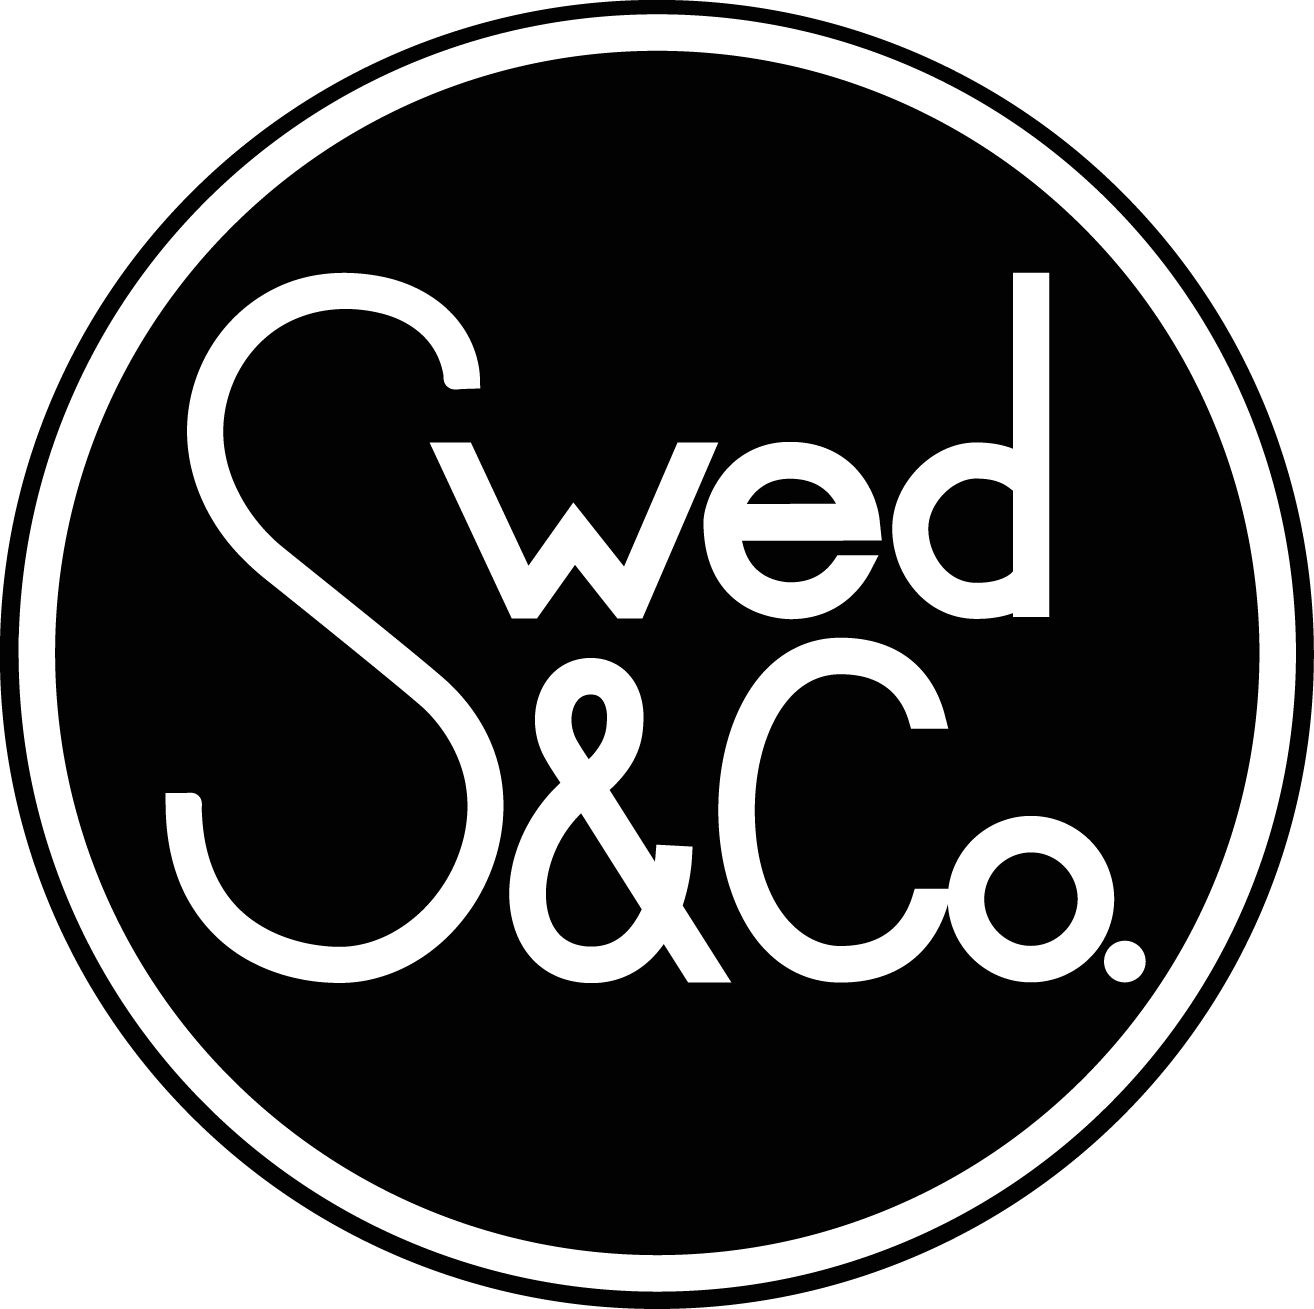 Swed & Co. Coffee